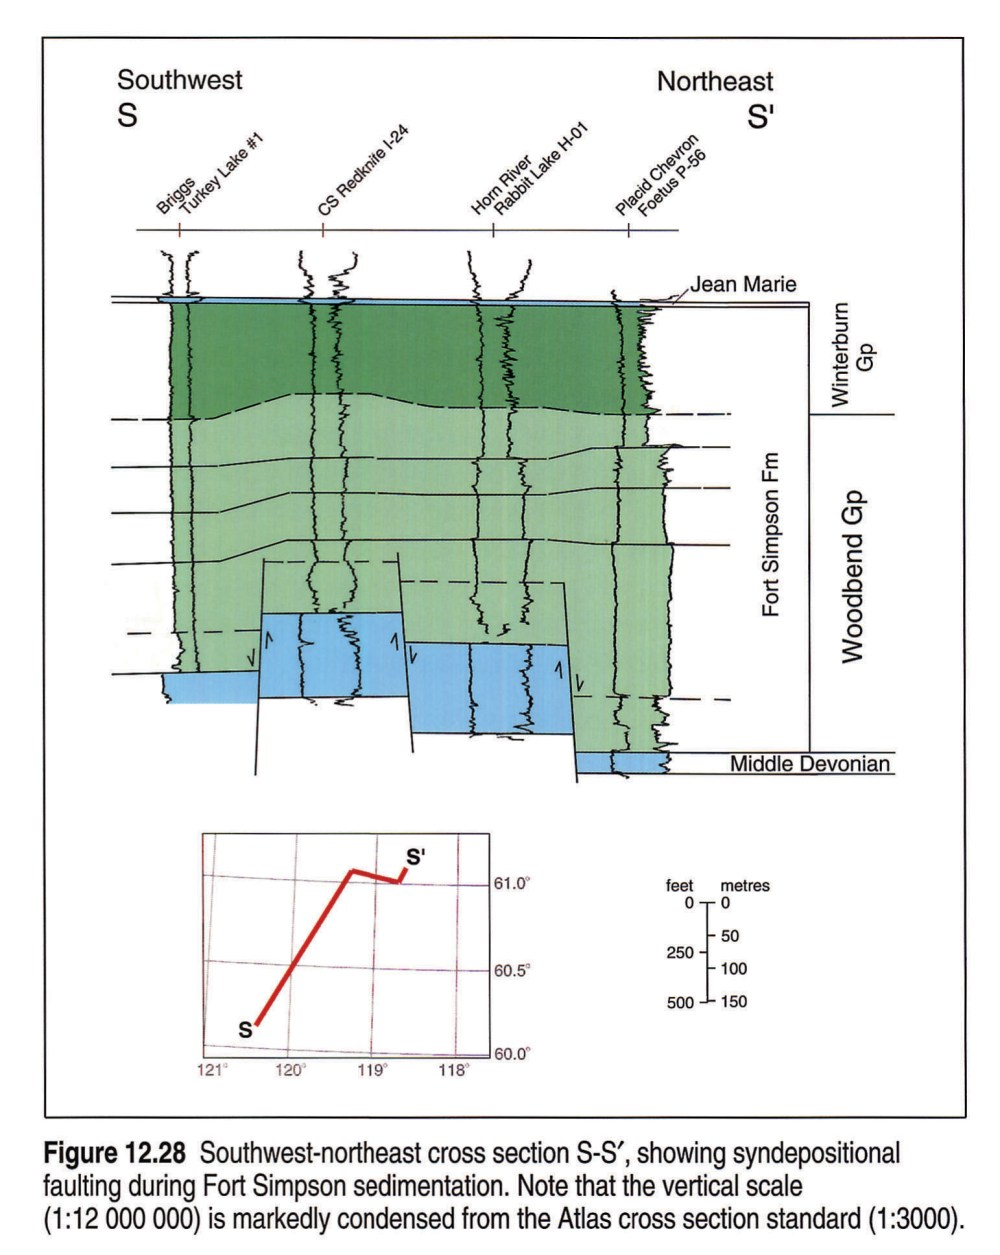 medium resolution of in localized downthrown blocks or deepened areas the shale is over thickened by as much as 185 m